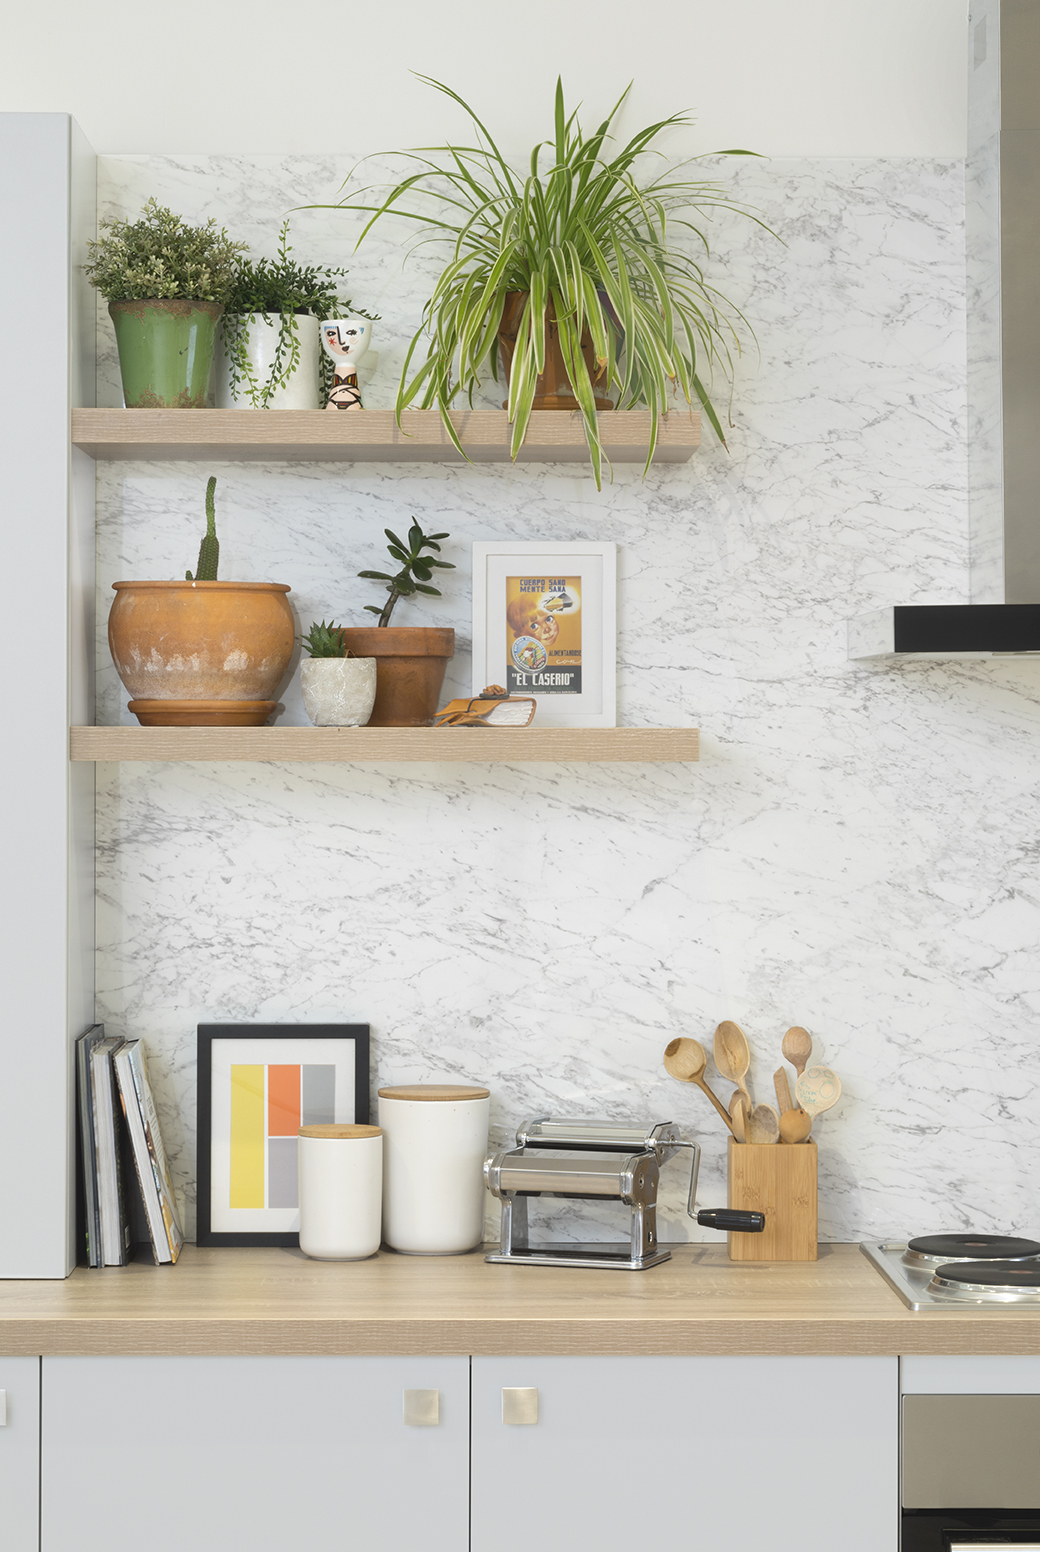 kitchen shelving ideas inspirational plan for natural | Natural beauty - kitchen inspiration and ideas | kaboodle ...